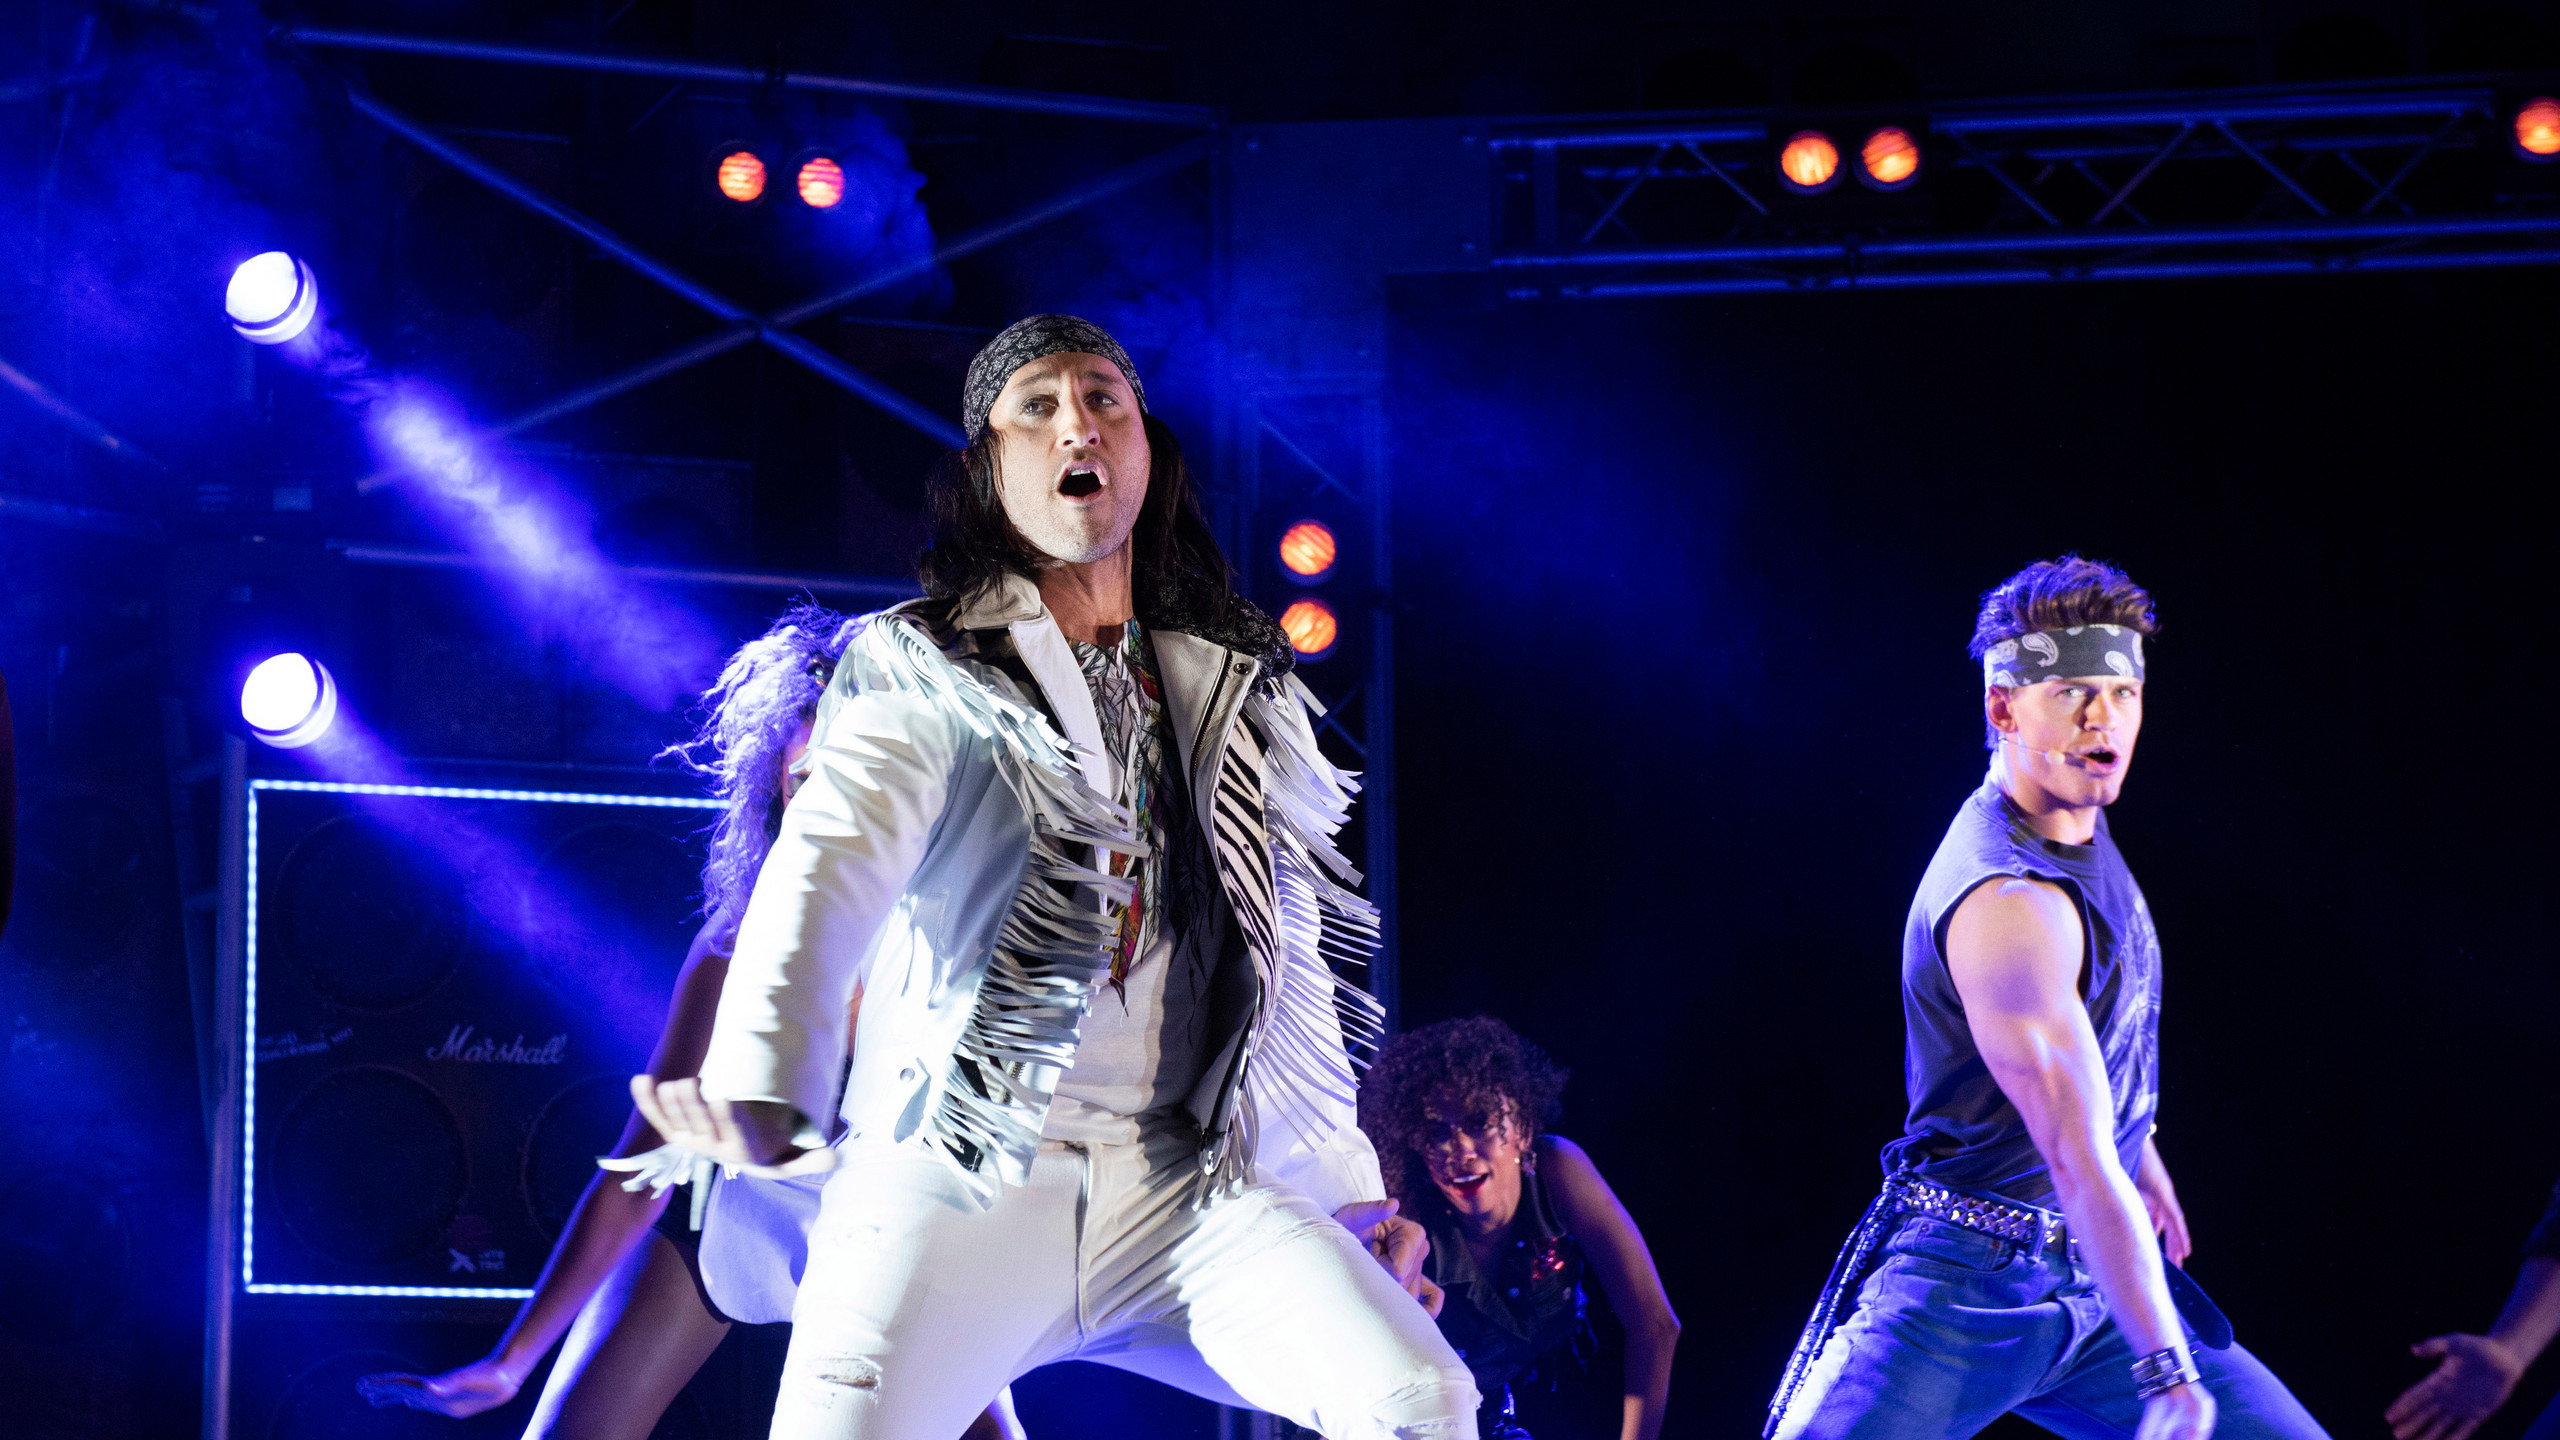 4. ROCK OF AGES